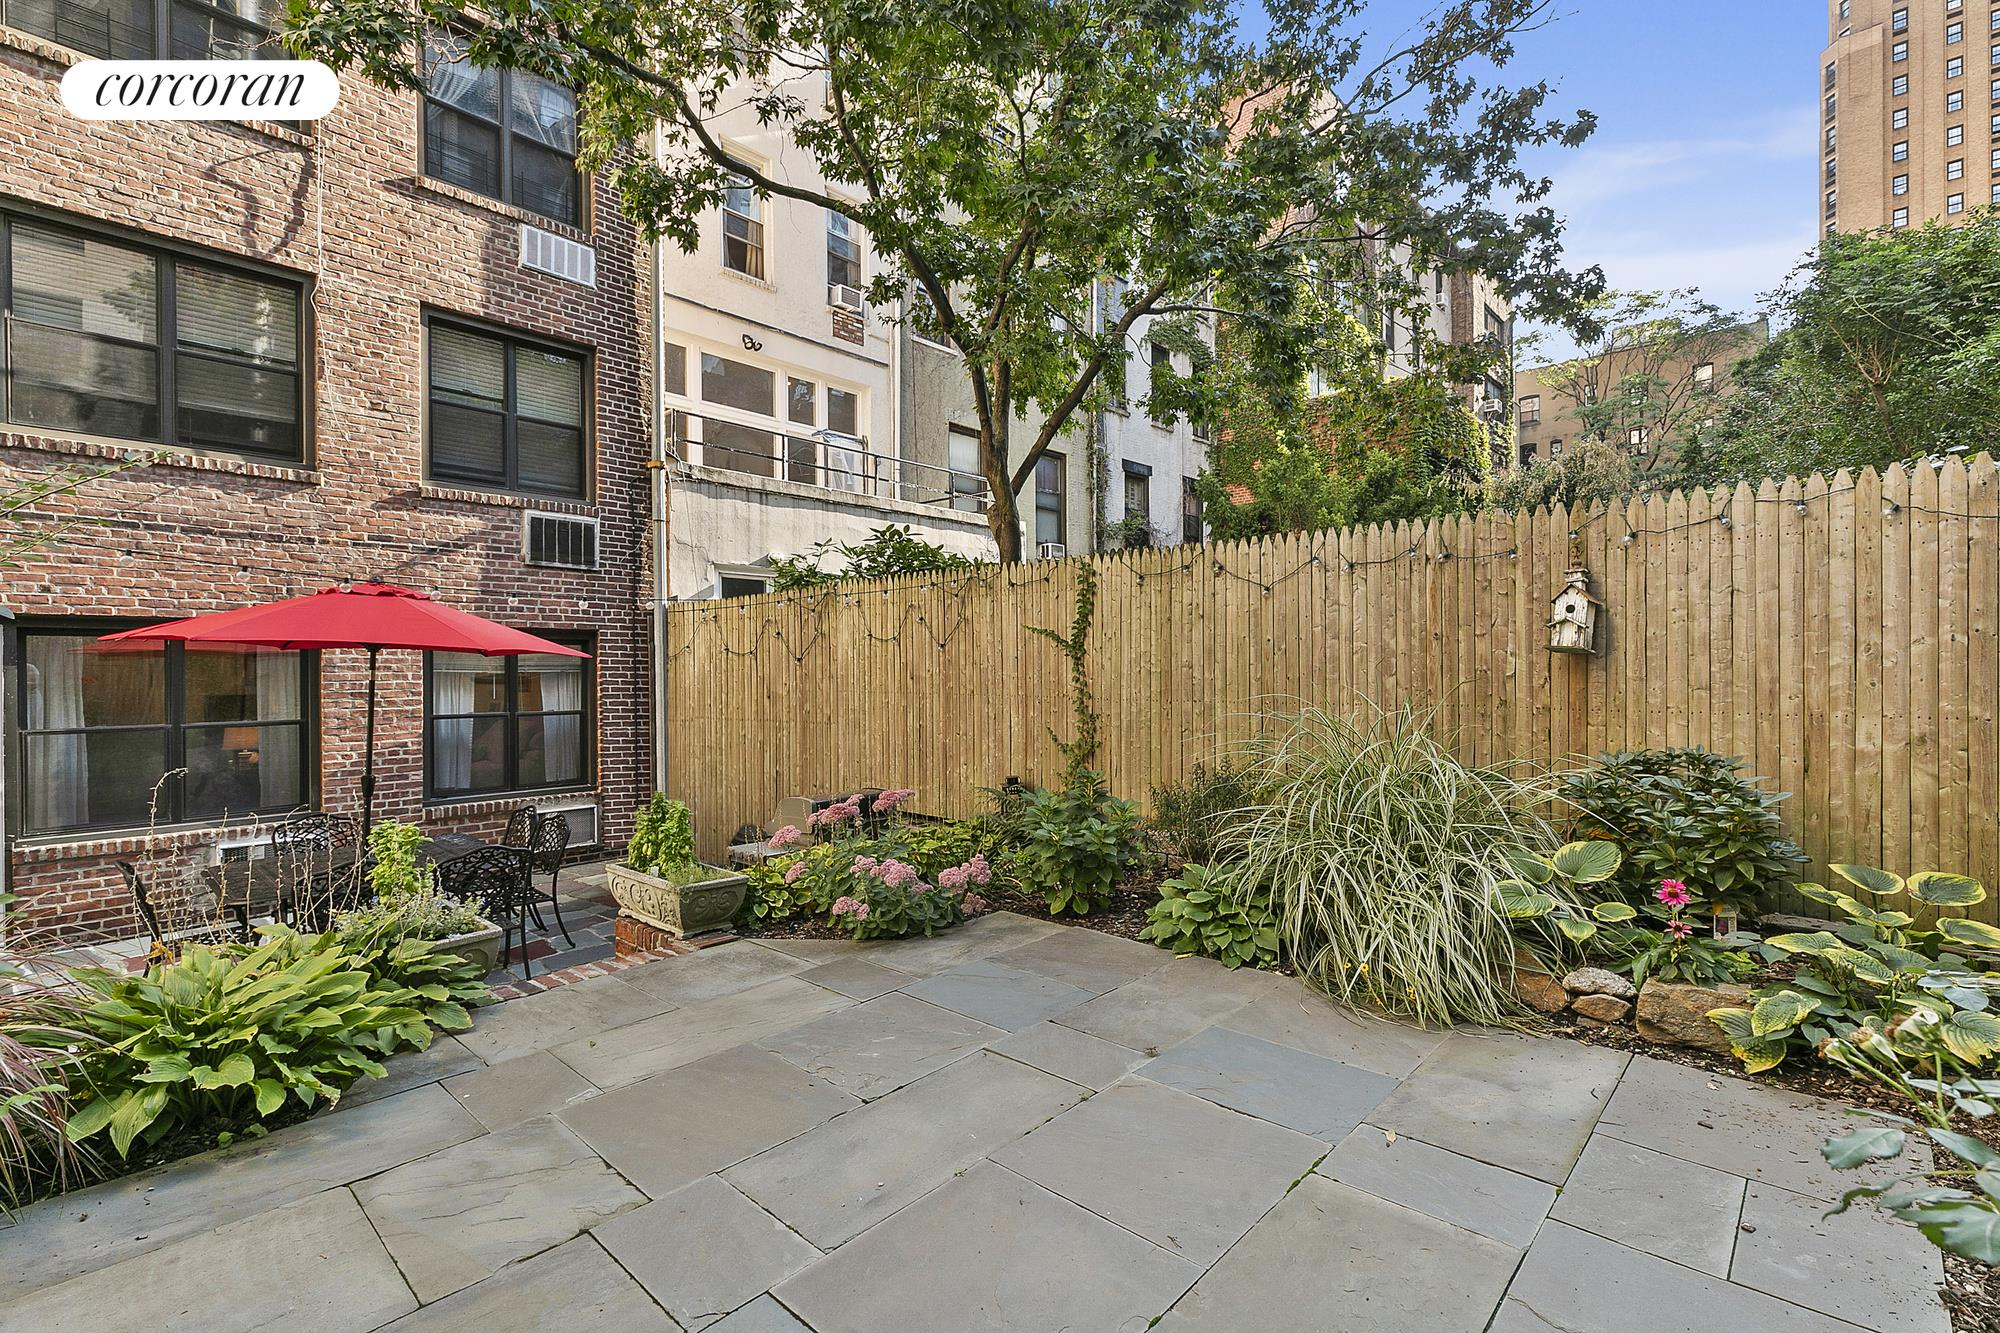 Apartment for sale at 336 East 50th Street, Apt GARDENB